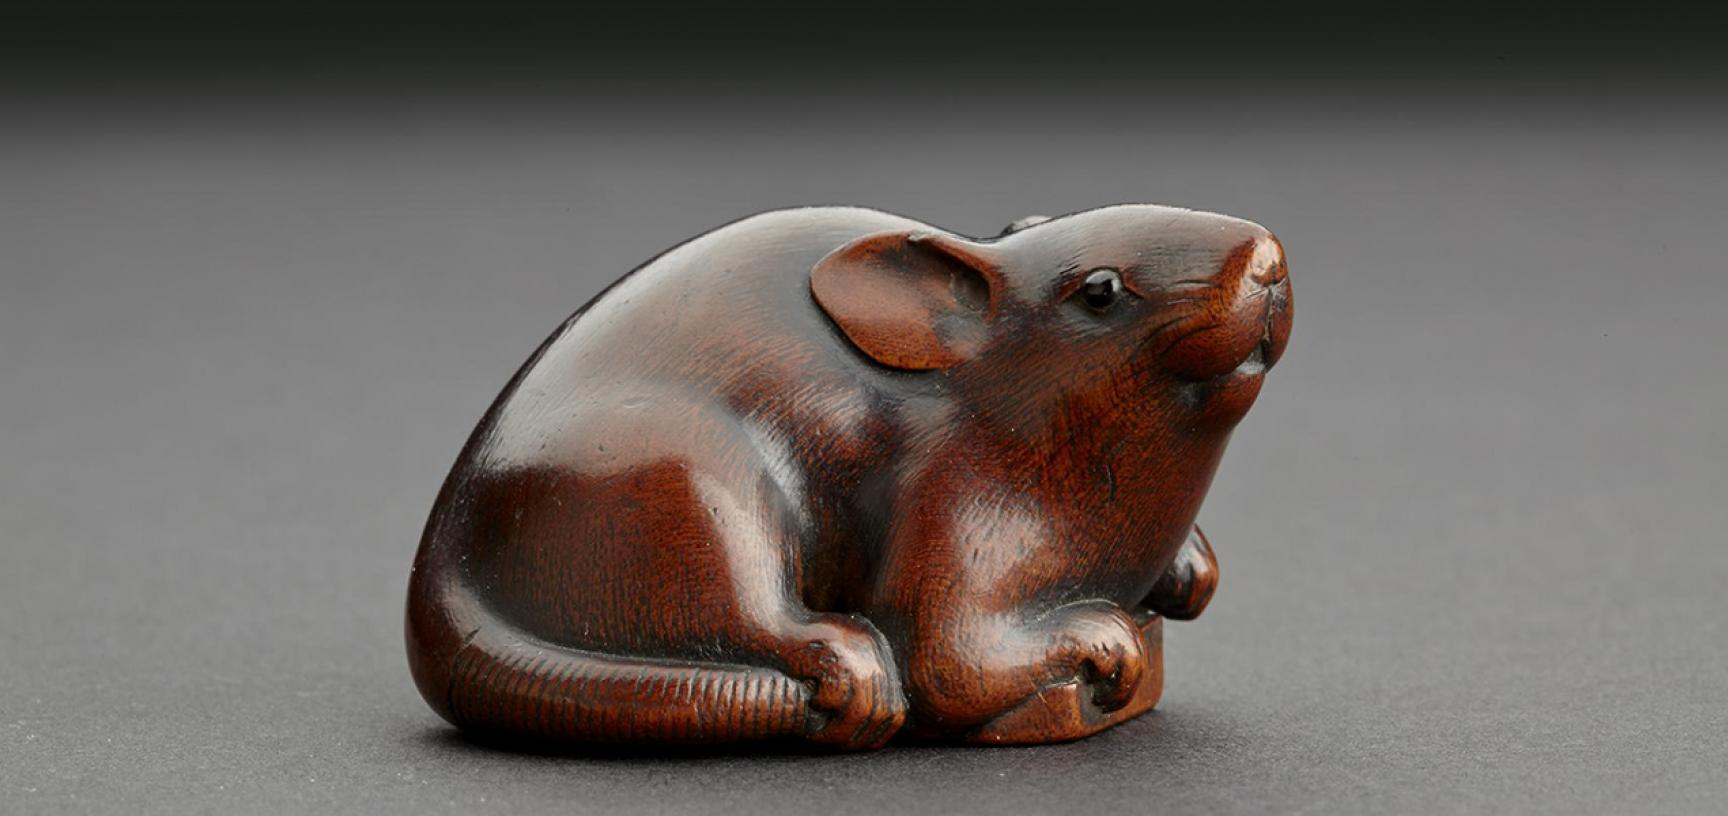 Wood Netsuke in the form of a mouse from the Ashmolean collections